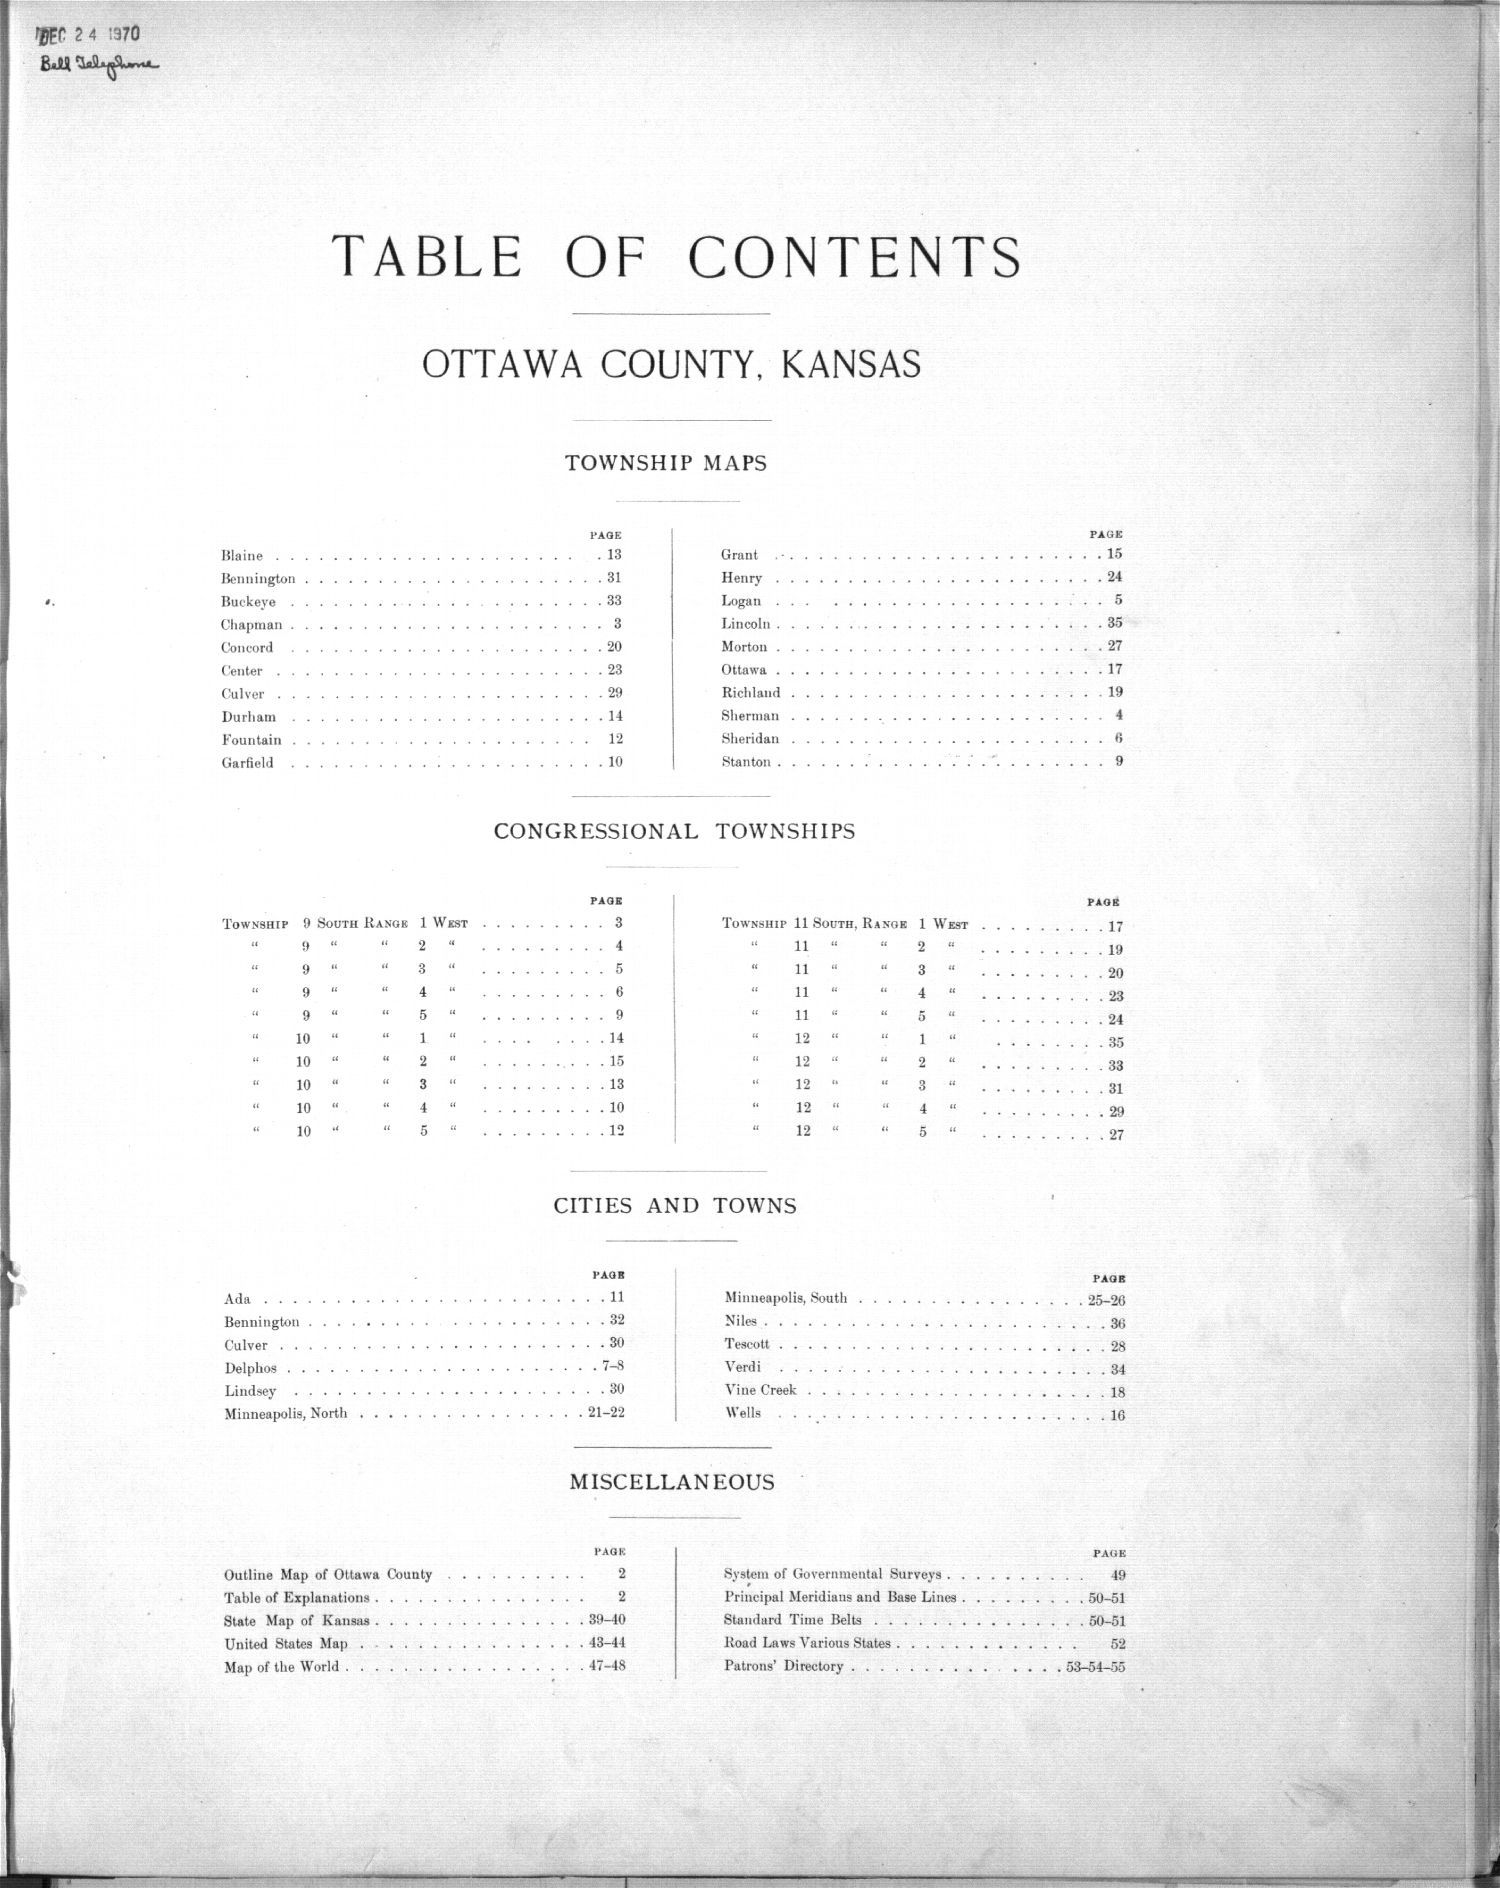 Plat book of Ottawa County, Kansas - Table of Contents